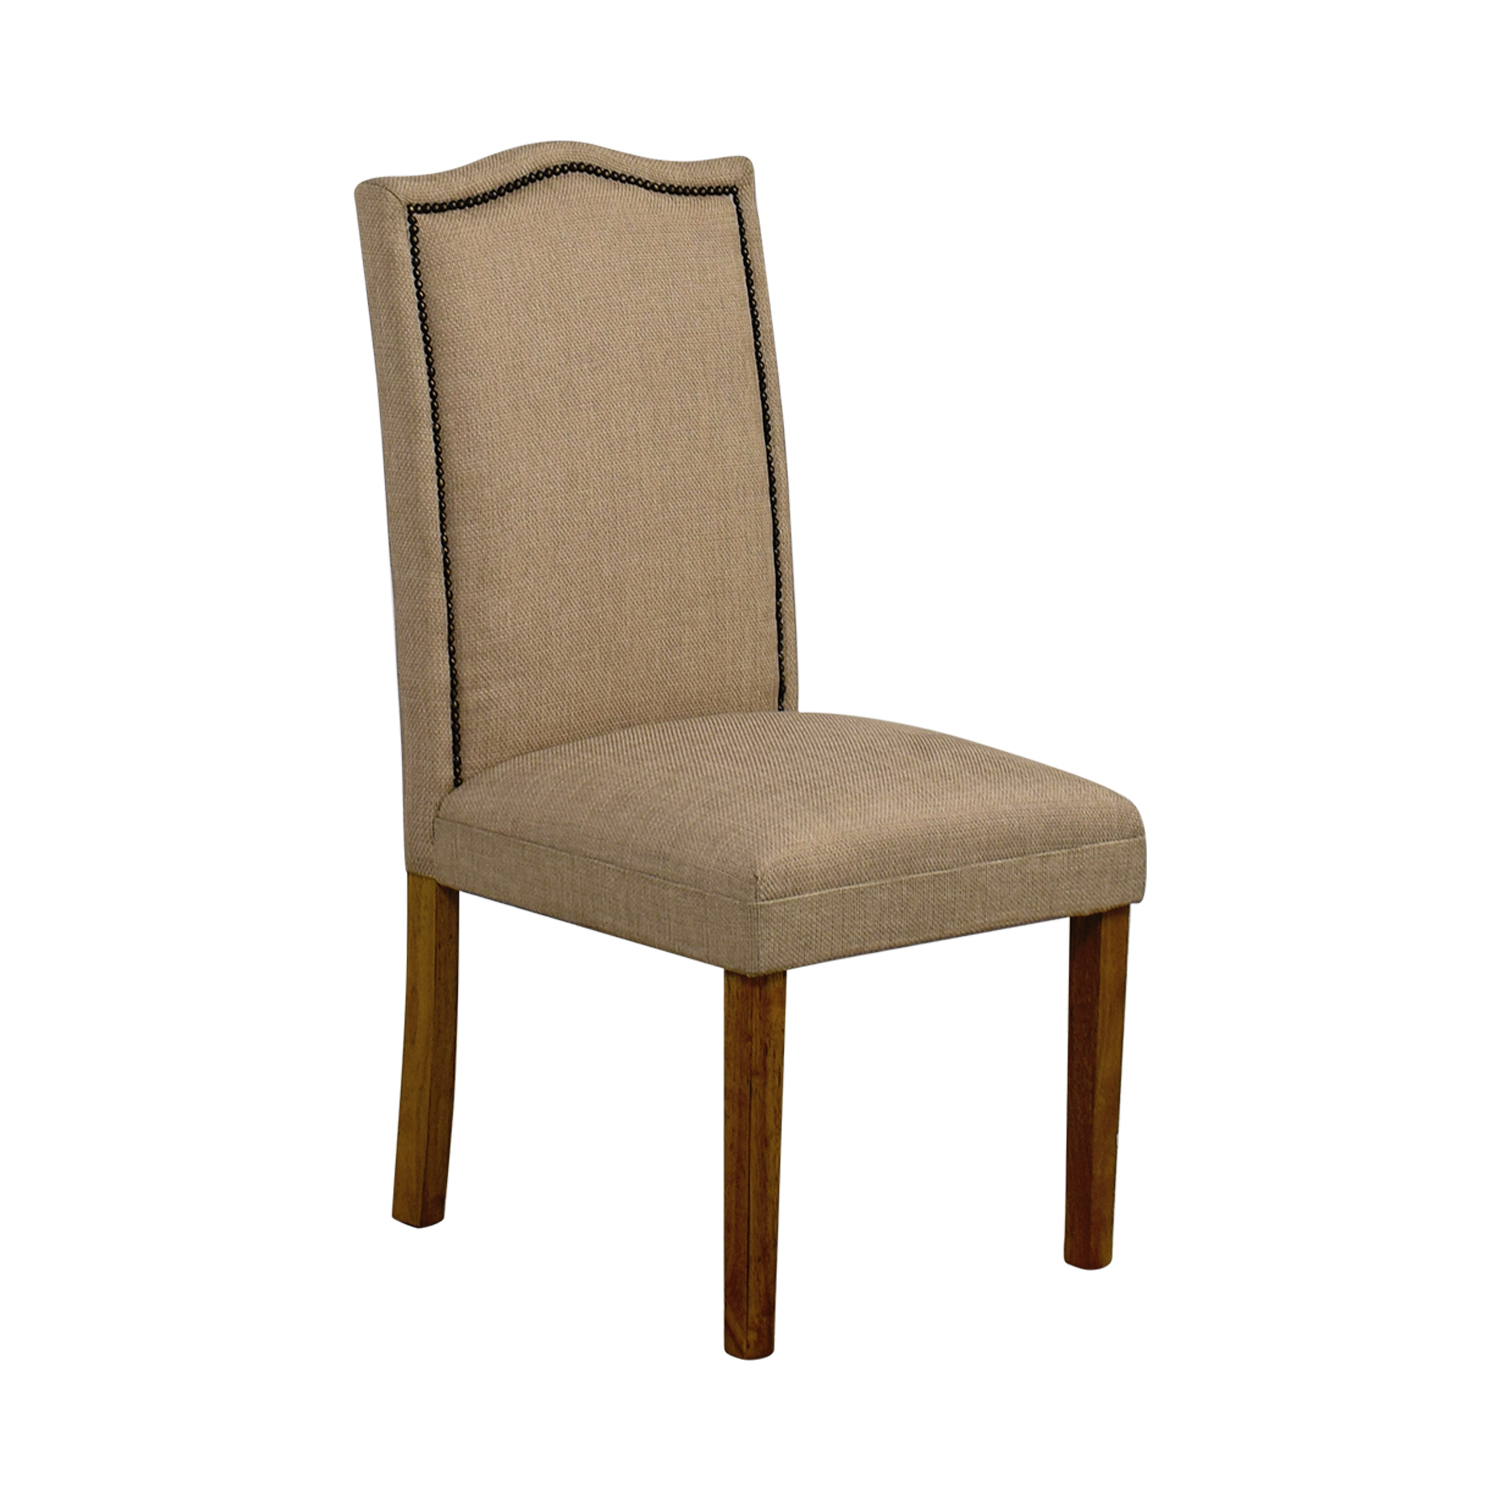 Beige High Back Chair with Nailhead Accent / Chairs